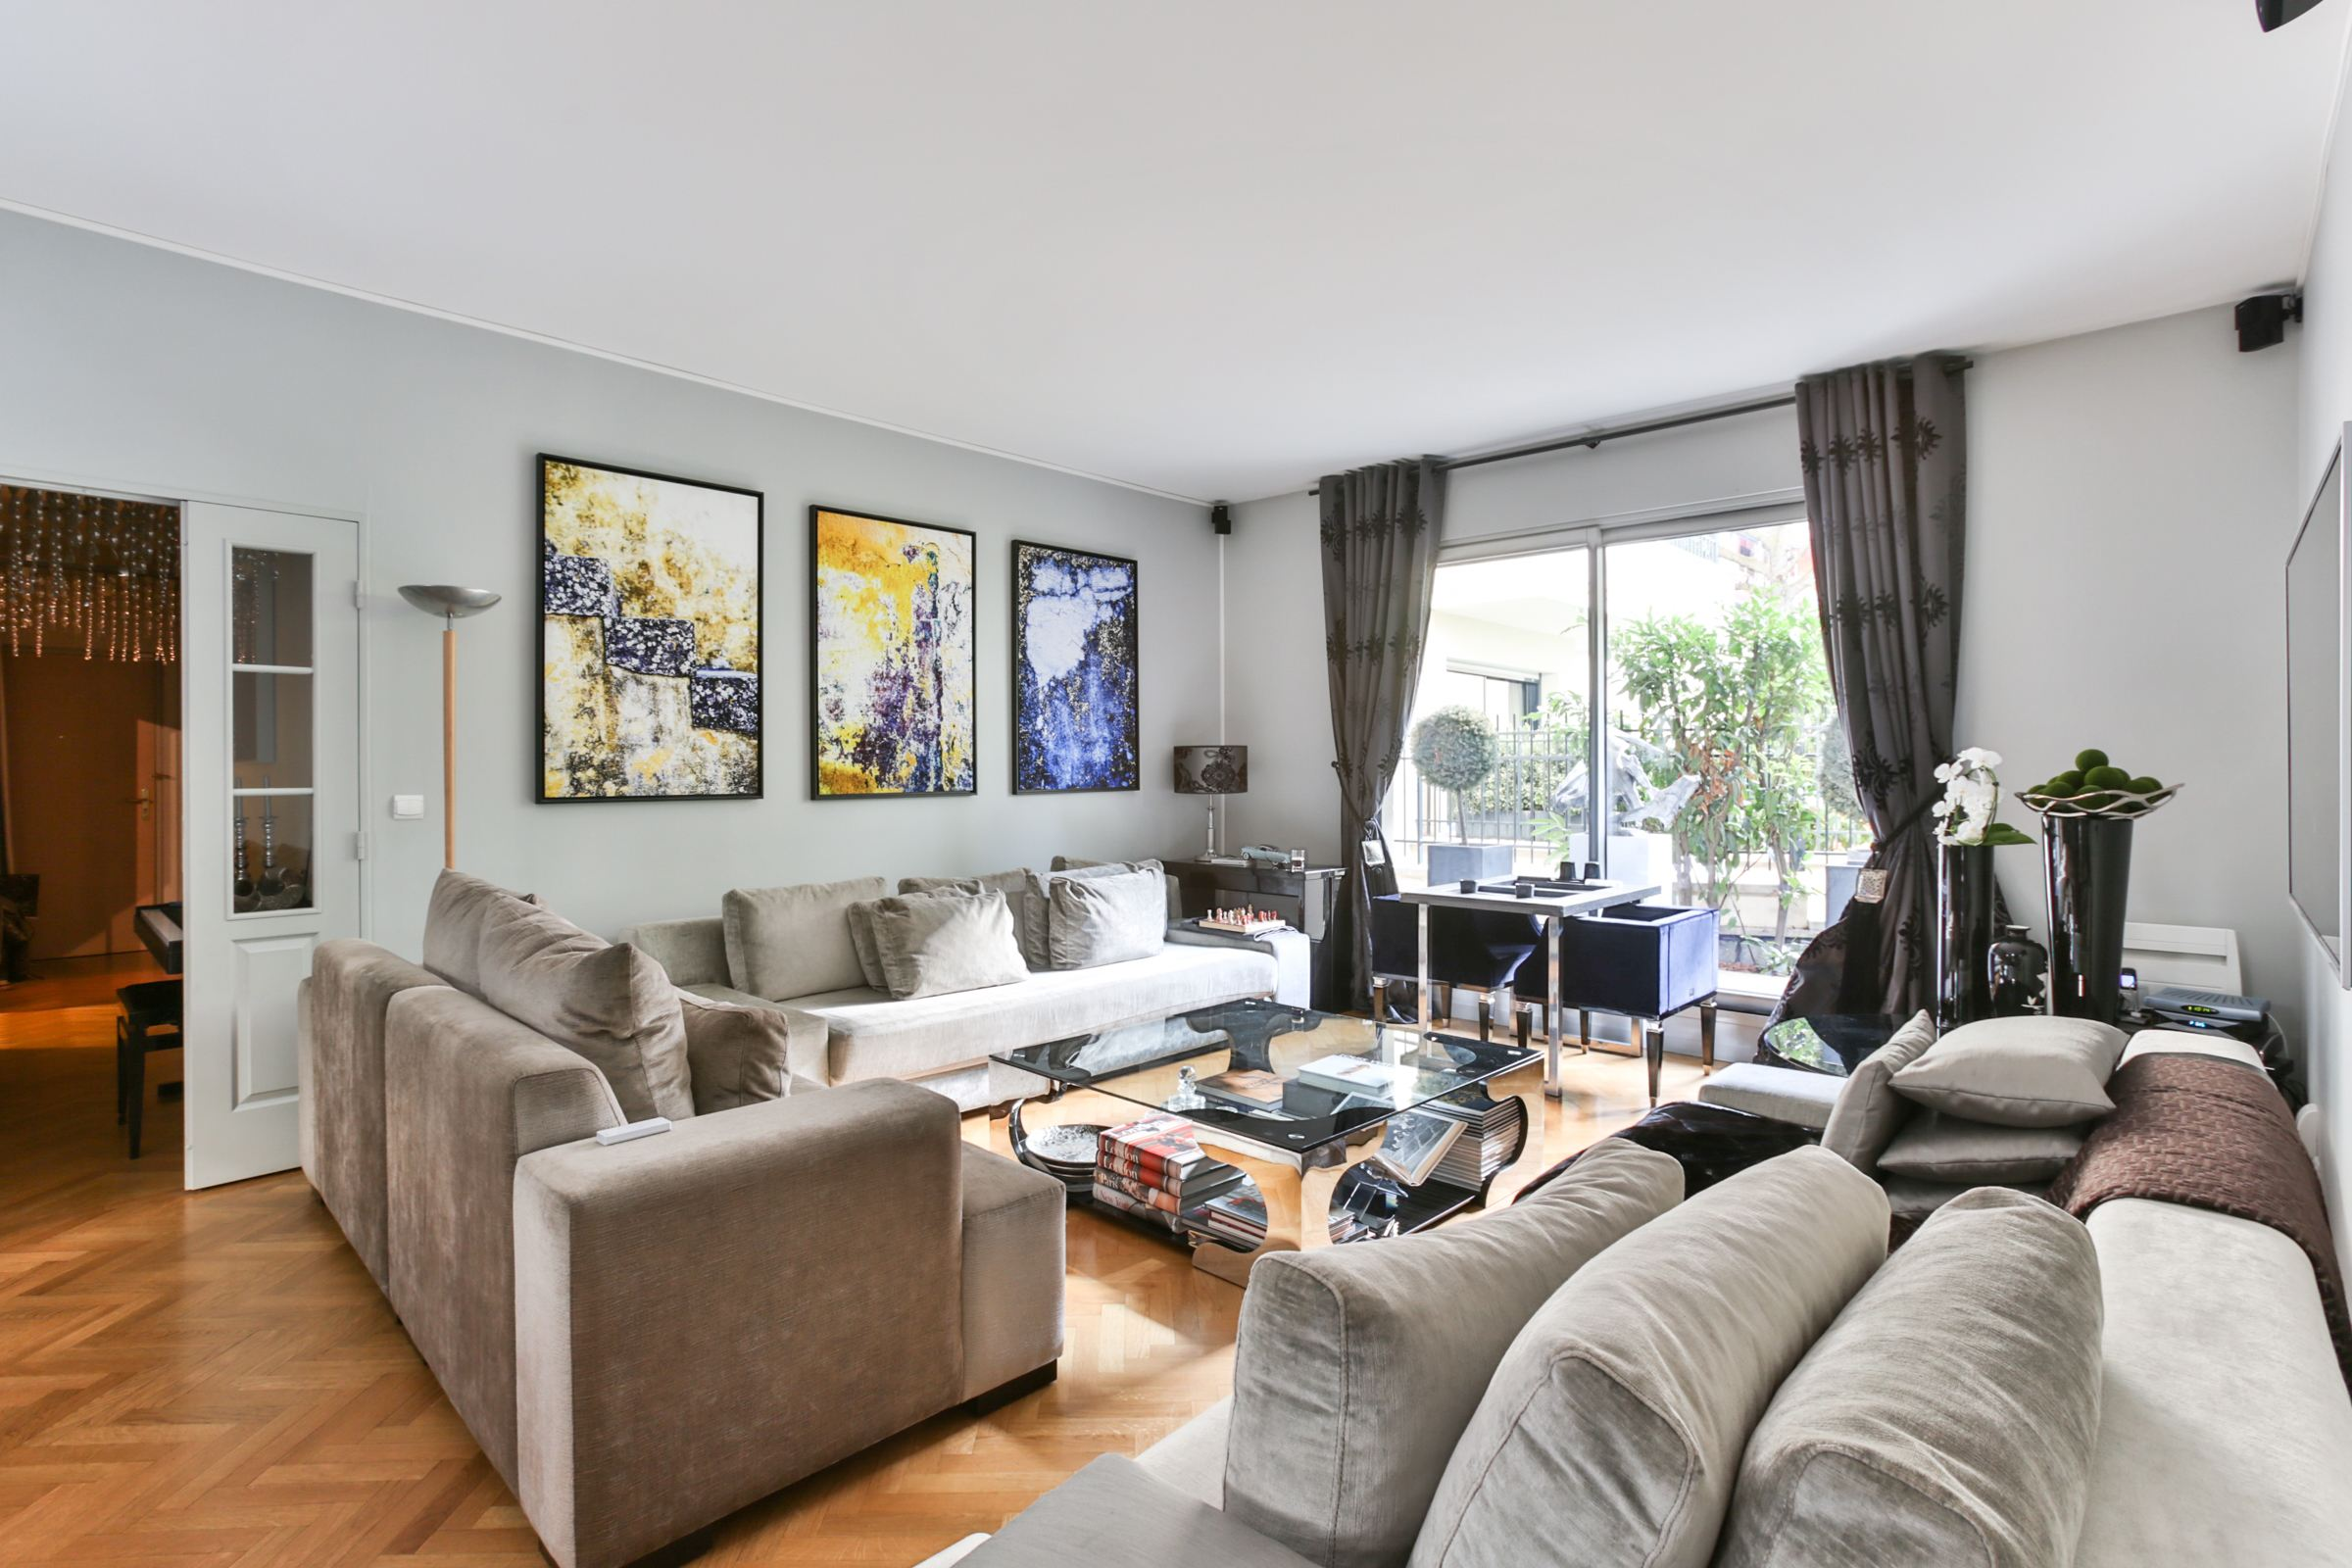 Property For Sale at Neuilly - Collège Lycée Pasteur - A 115 sq.m garden floor apartment.